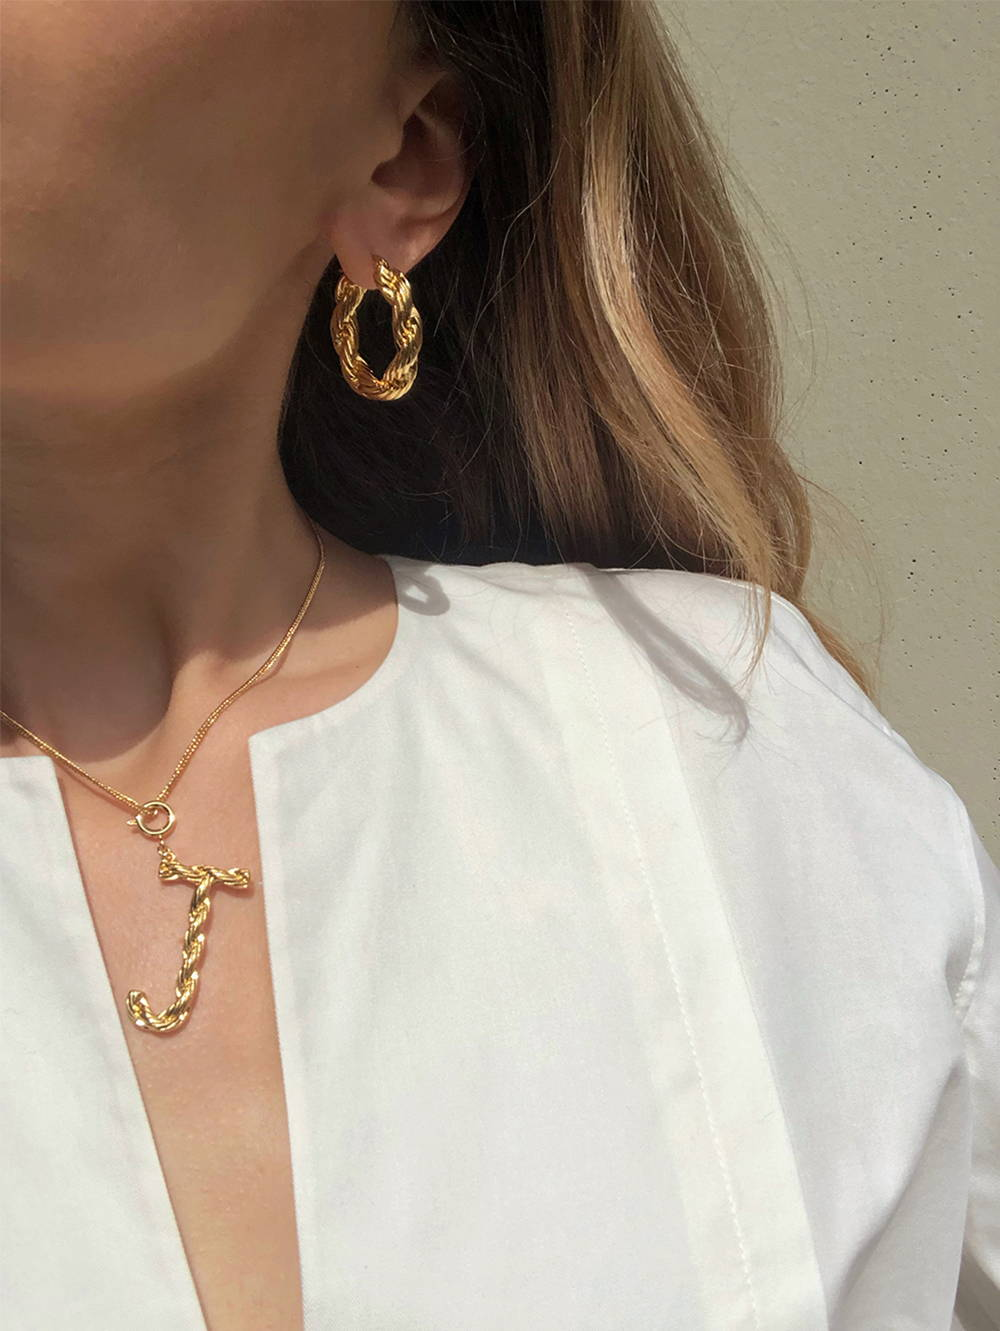 Oroton Luna Letter Charm Necklace and Gold Earring worn by Jessica Alizzi